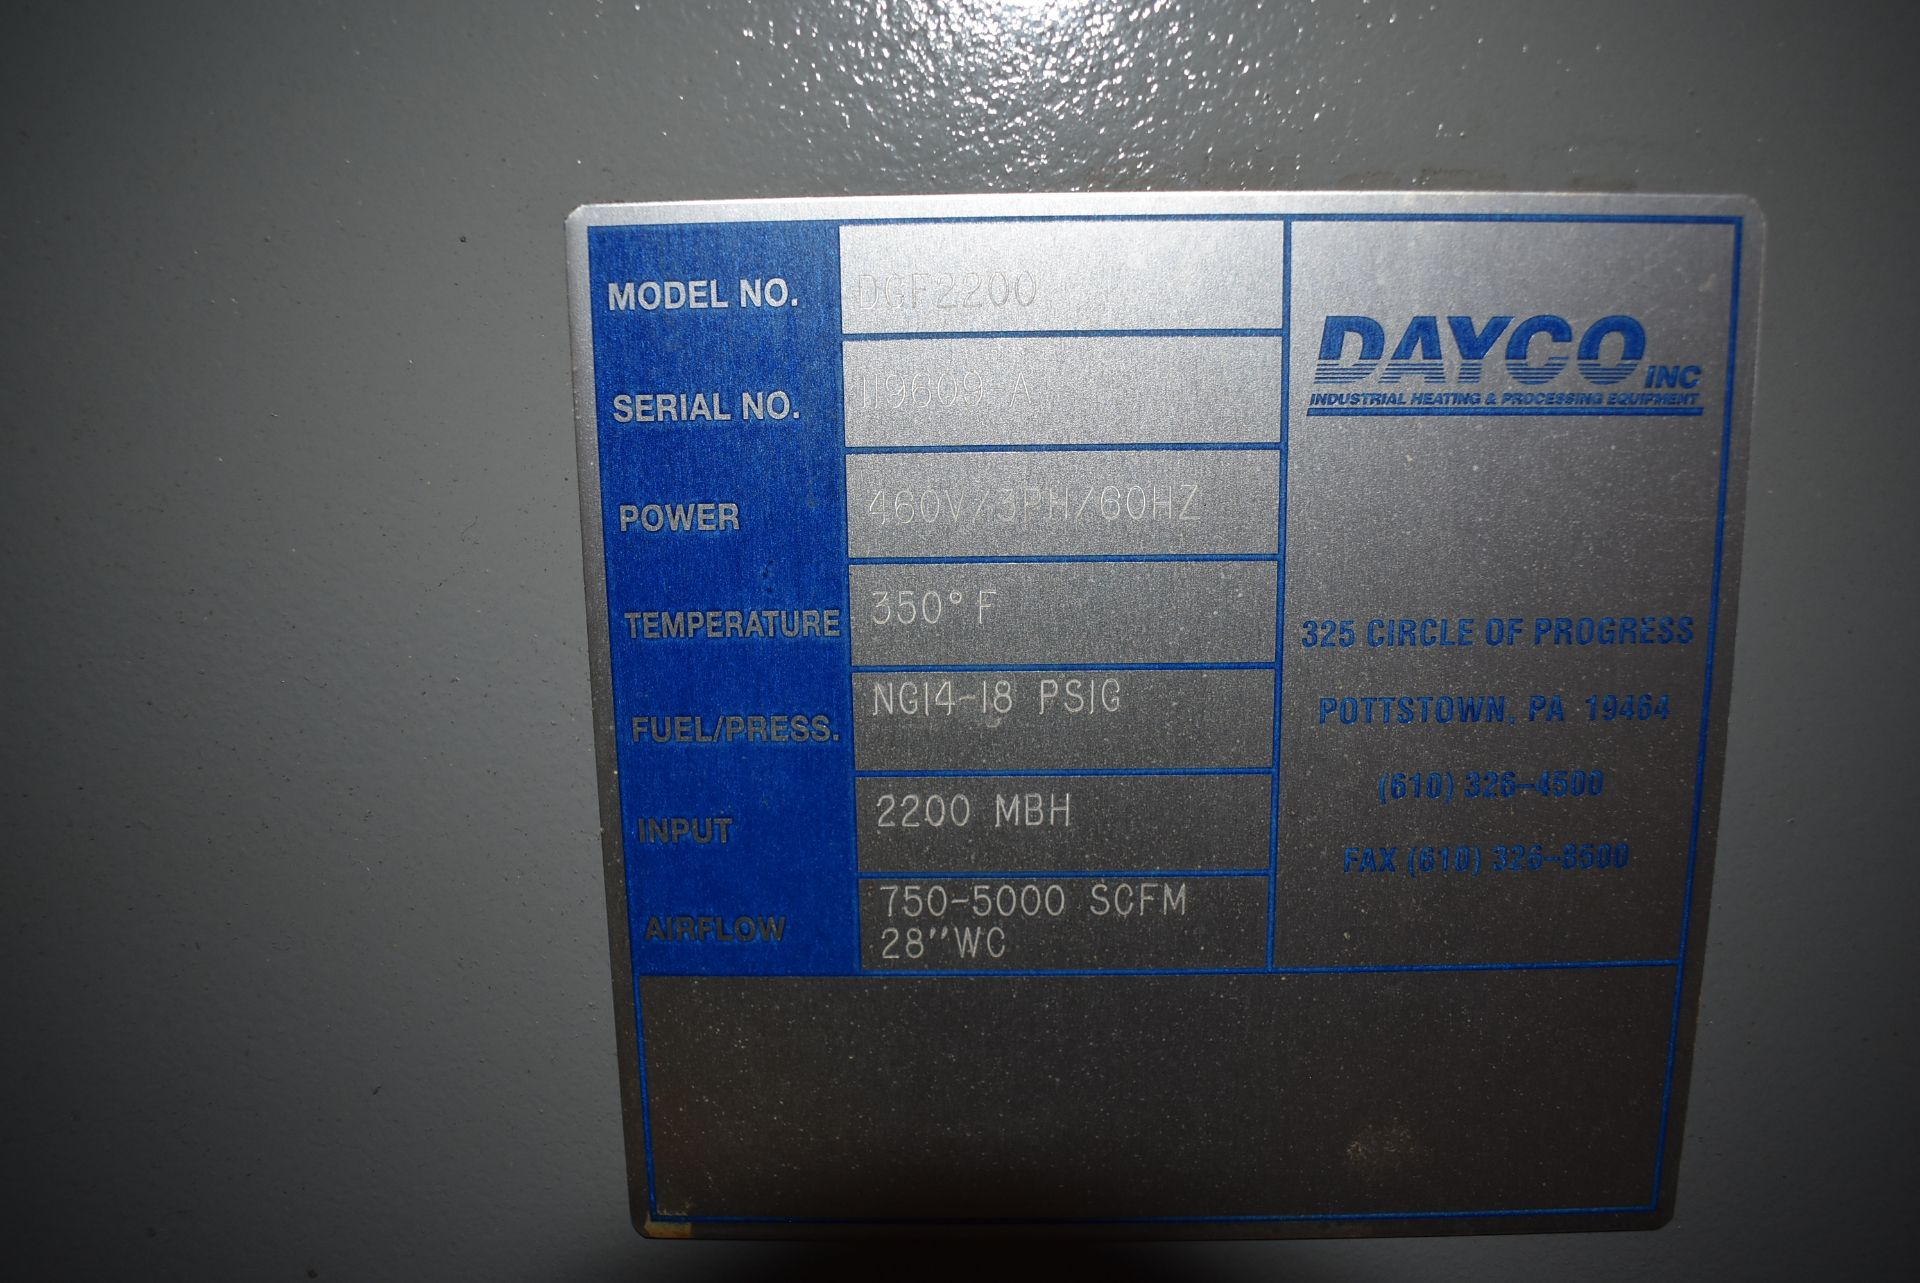 Dayco Model #DFG2200 Direct Fire Handling Unit, SN 119609-A - Image 3 of 5